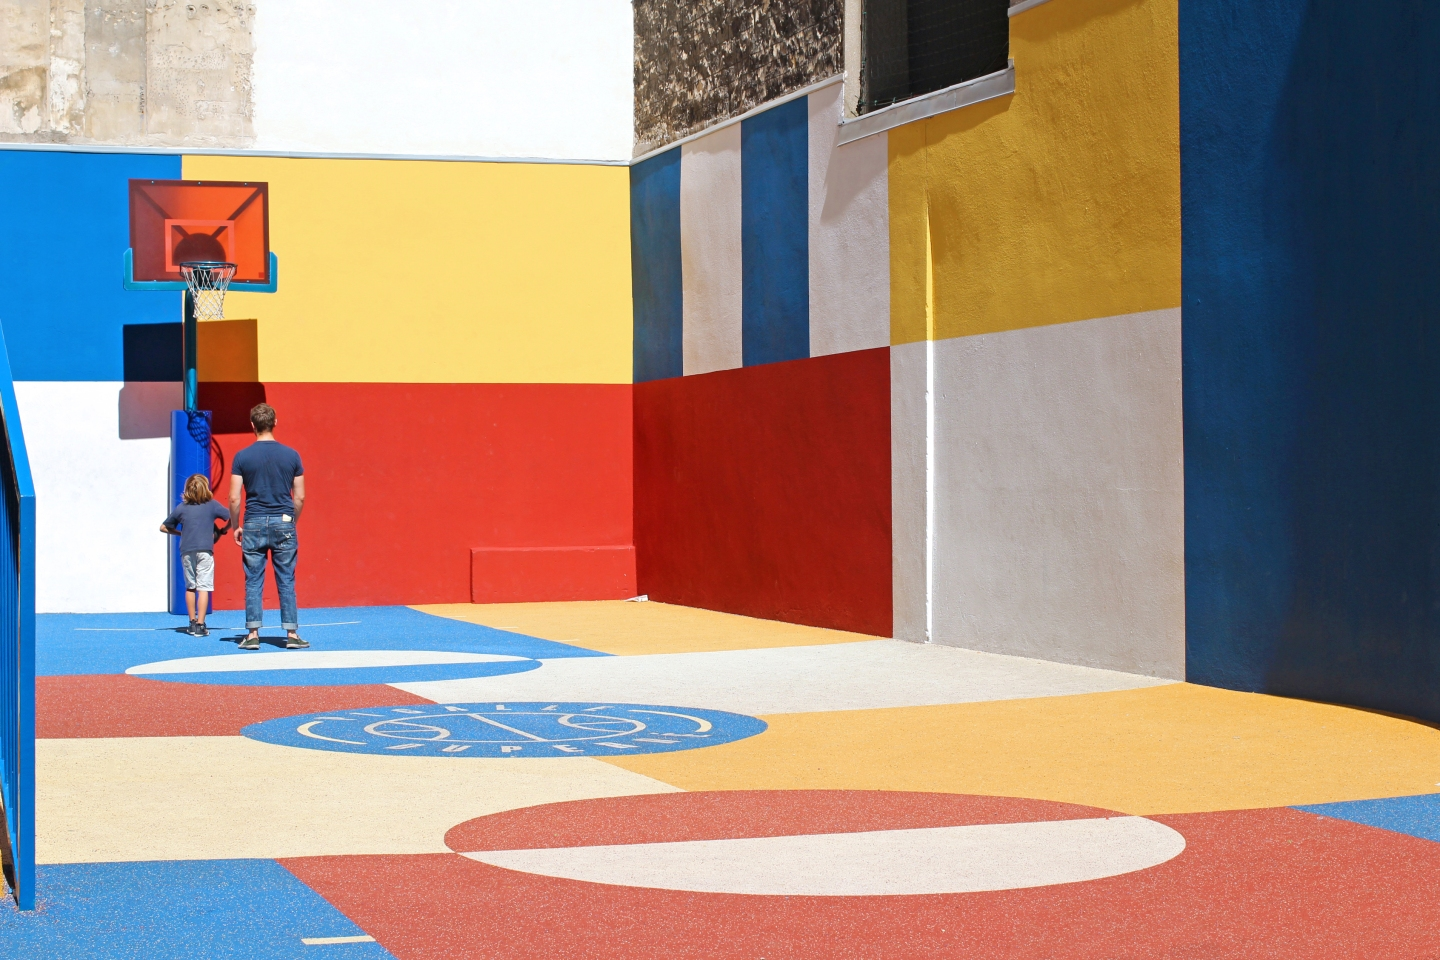 Pigalle Duperre Basketball Court